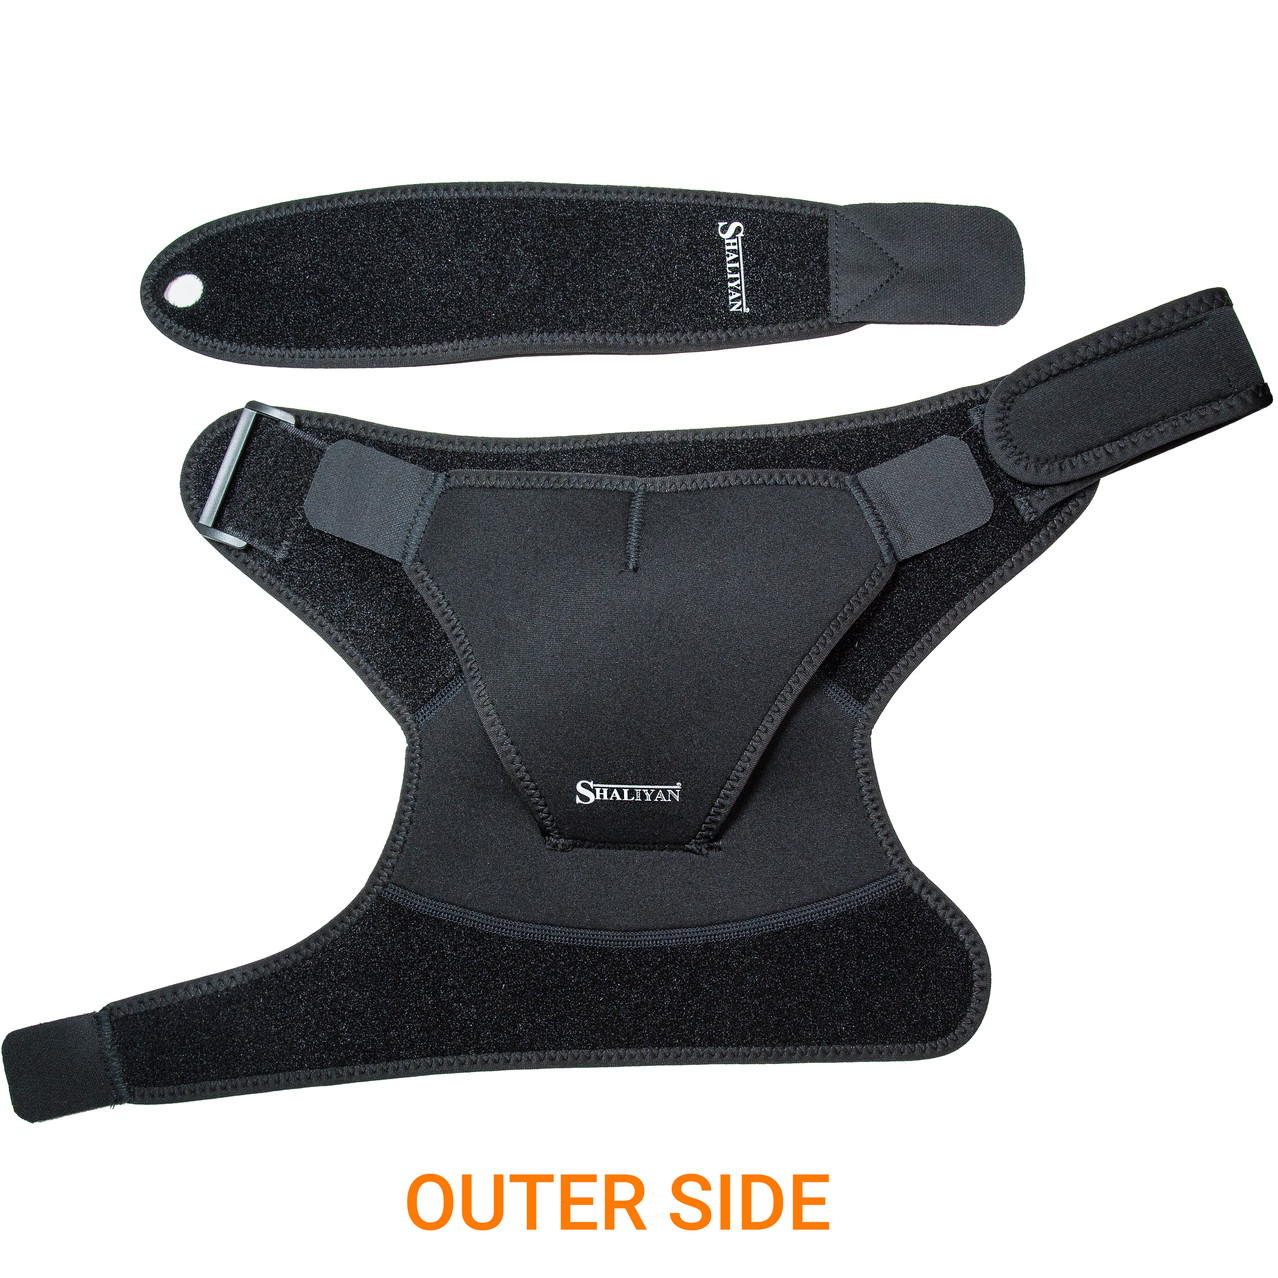 Both Products - Outer side.jpg